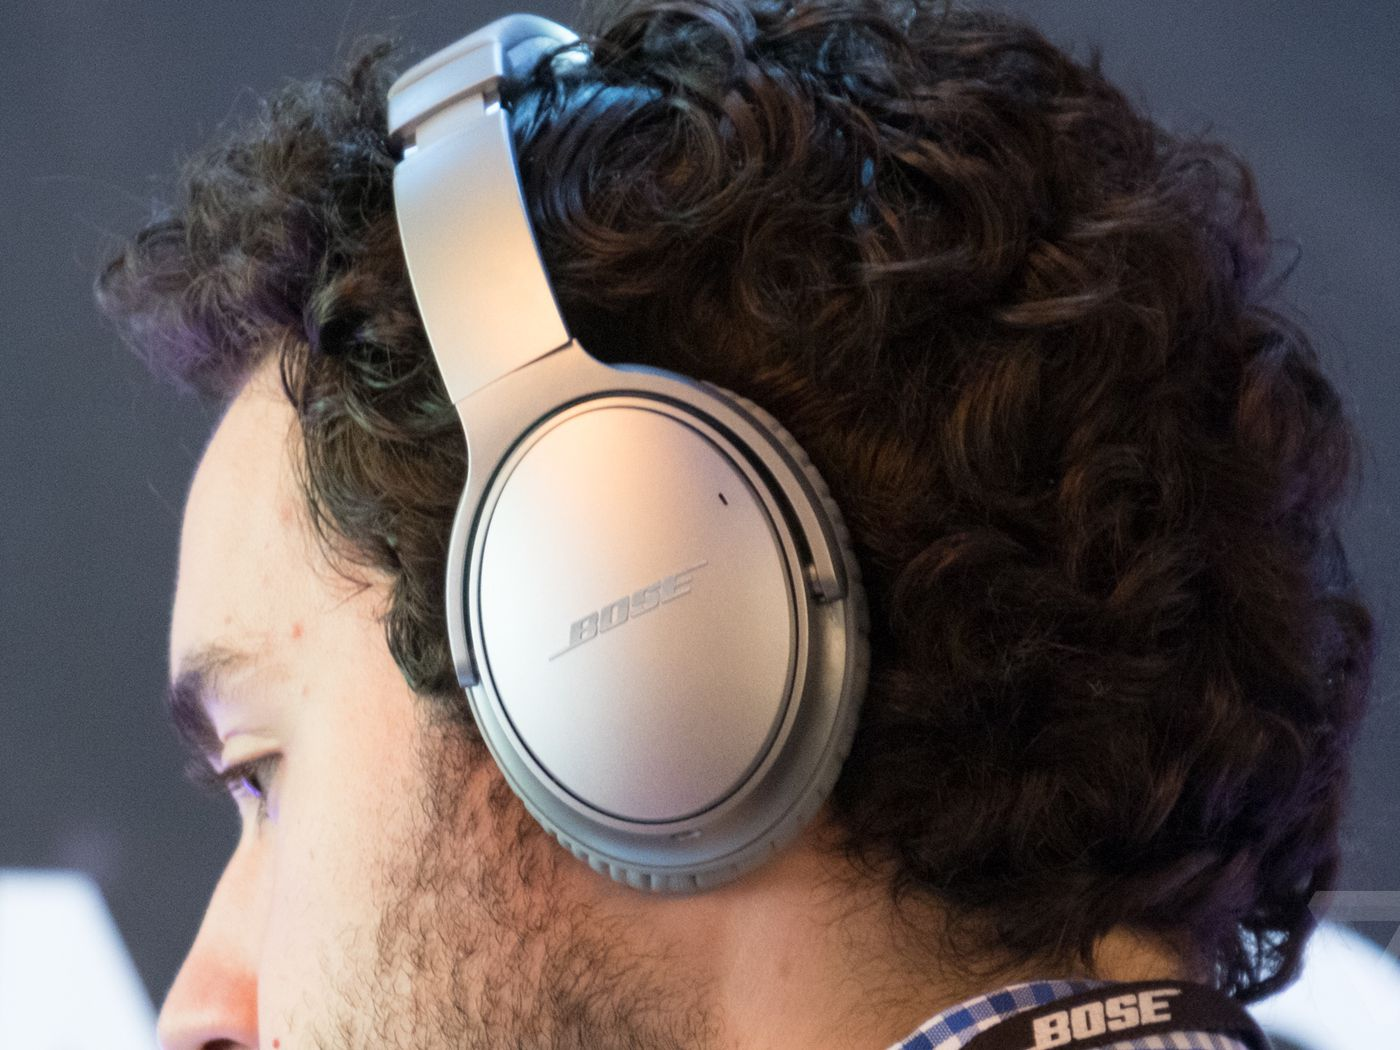 The Bose Qc 35 Headphones Are Fatally Flawed And No One Believes Me The Verge